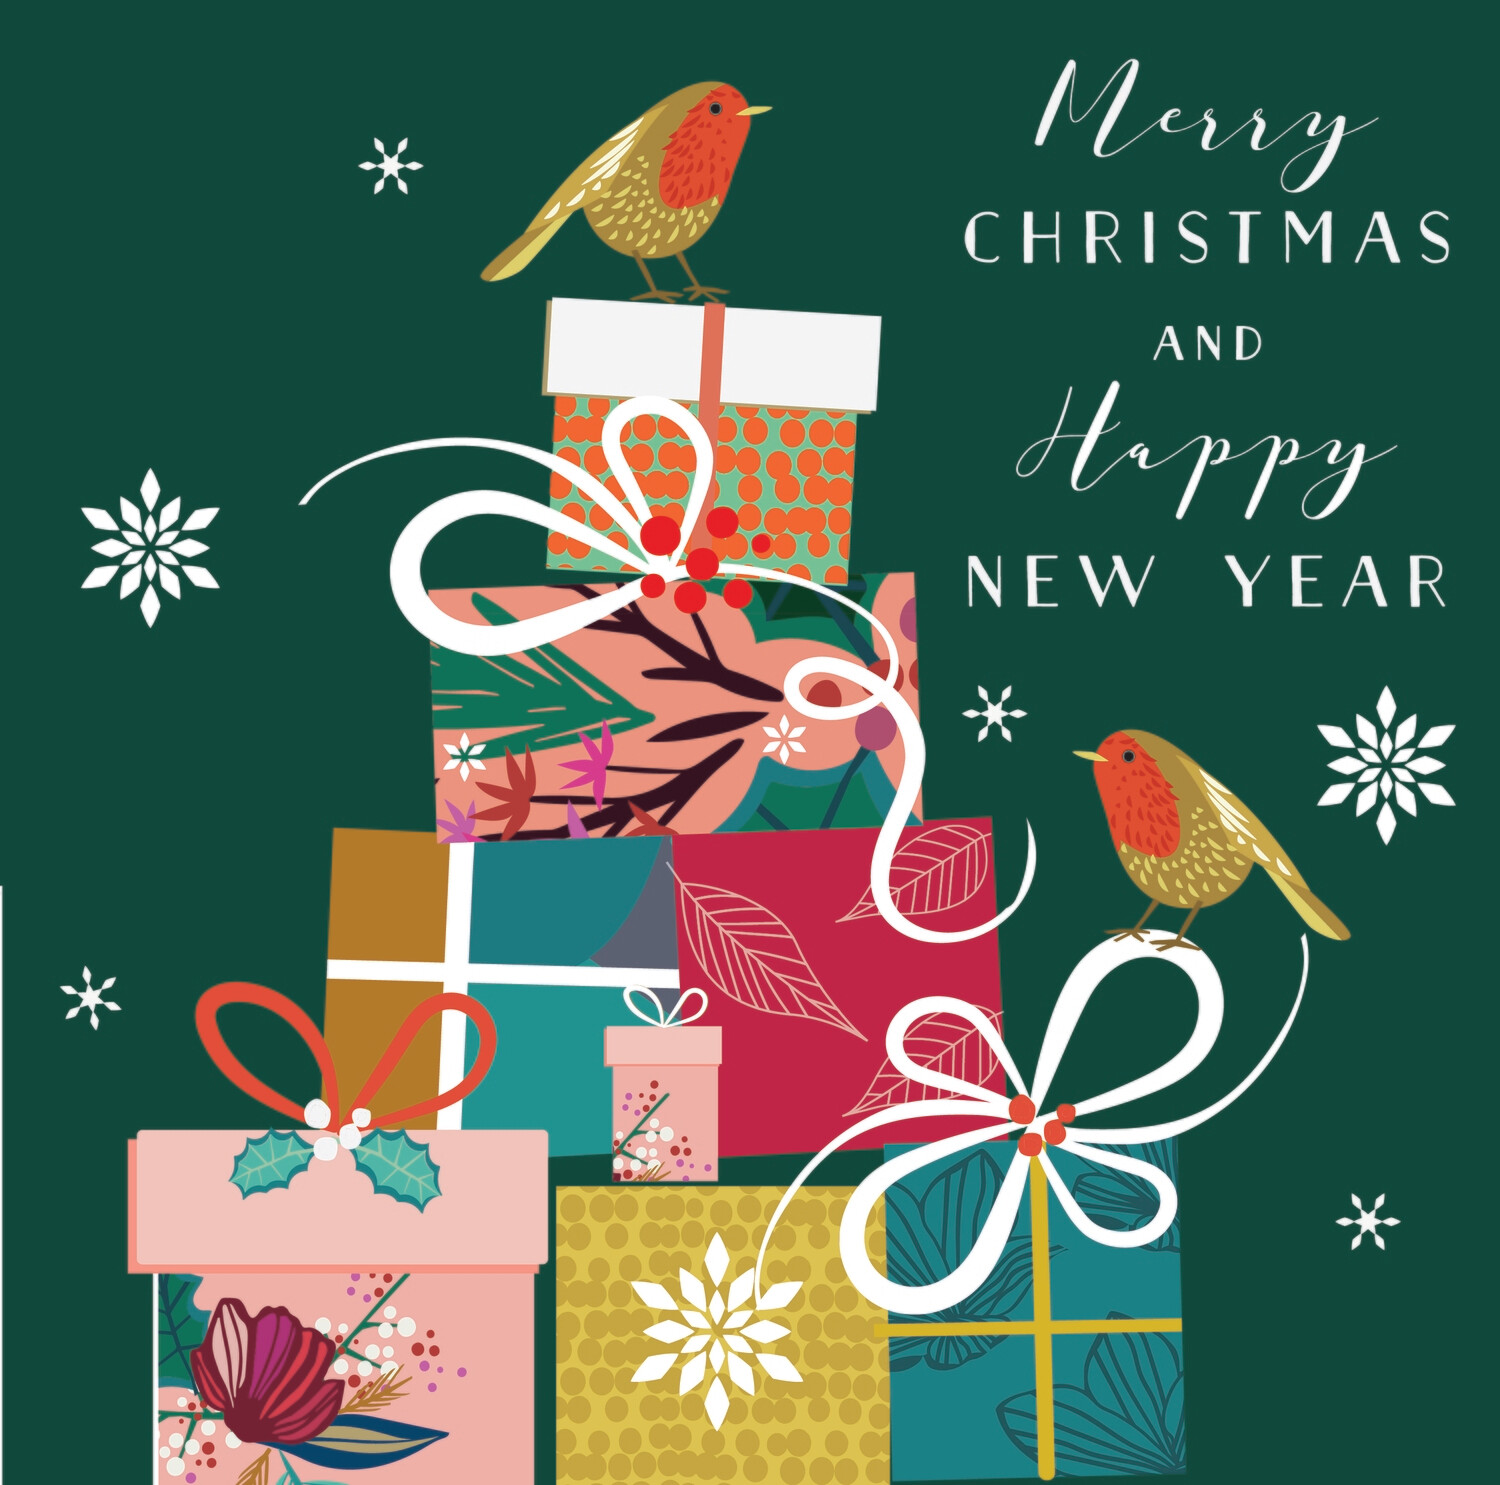 """CARTE DE VŒUX """"MERRY CHRISTMAS AND HAPPY NEW YEAR"""""""